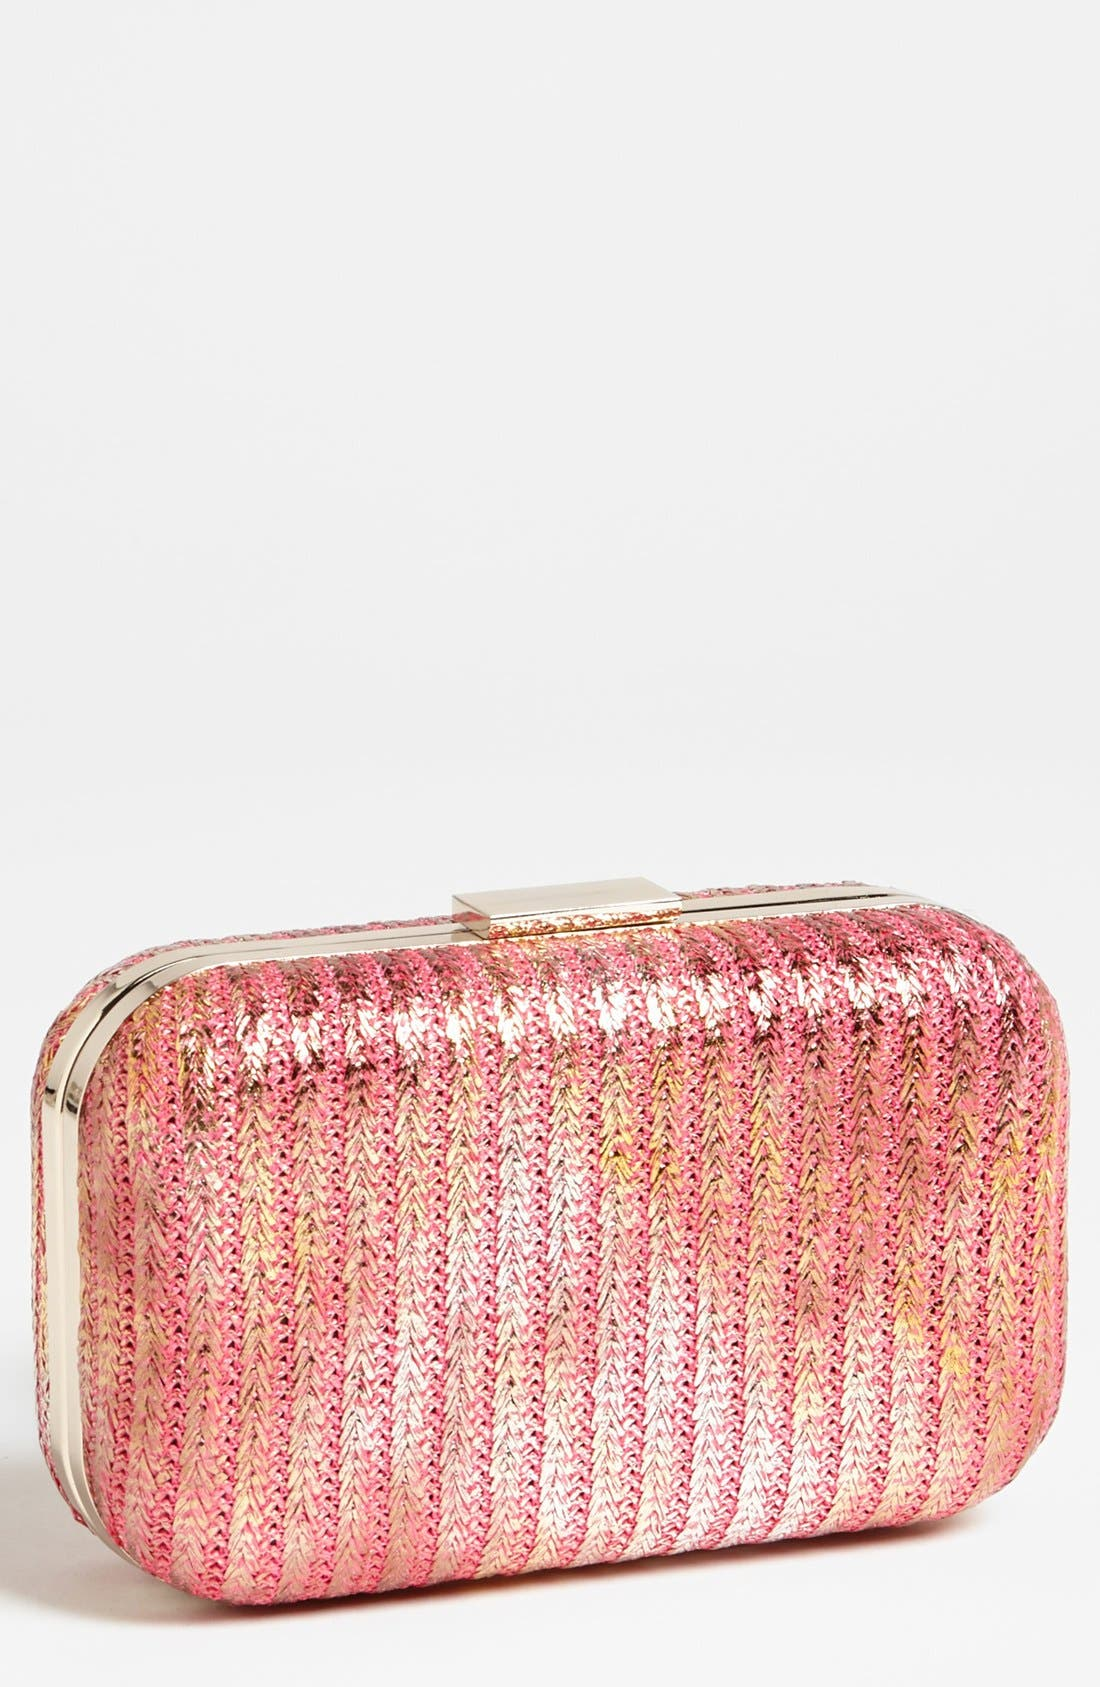 Alternate Image 1 Selected - Expressions NYC Metallic Box Clutch